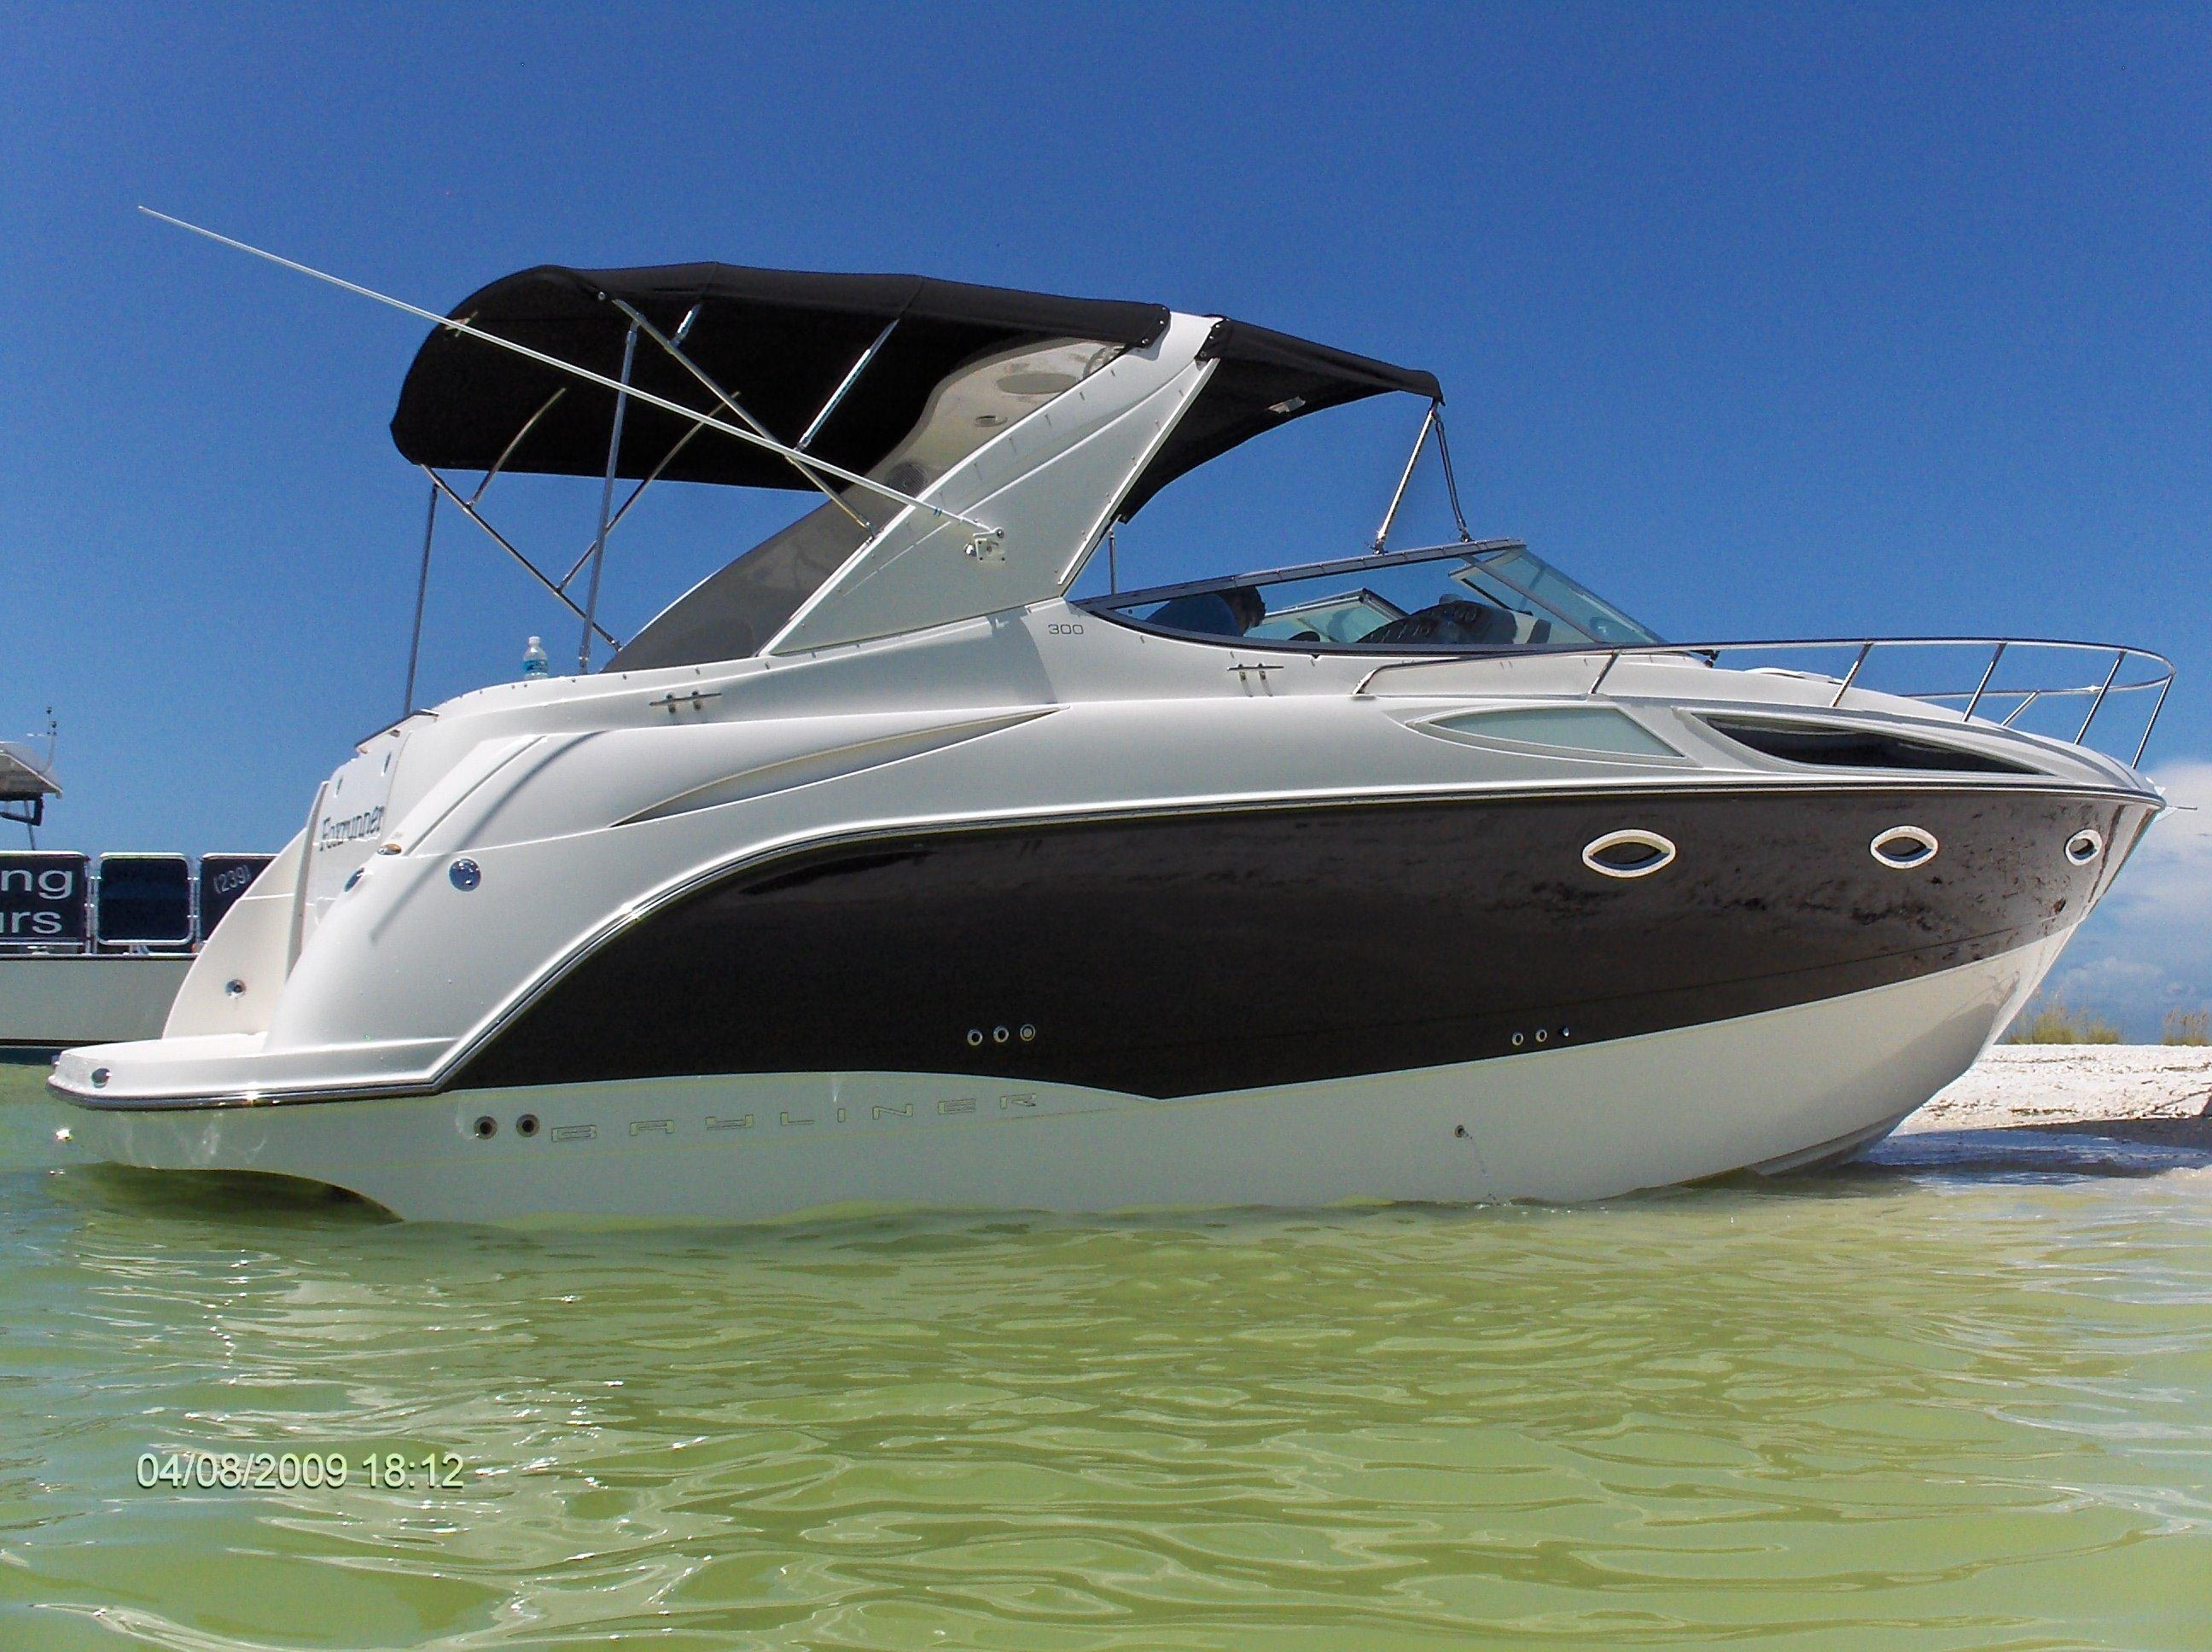 30 Foot Boats for Sale | Boat listings